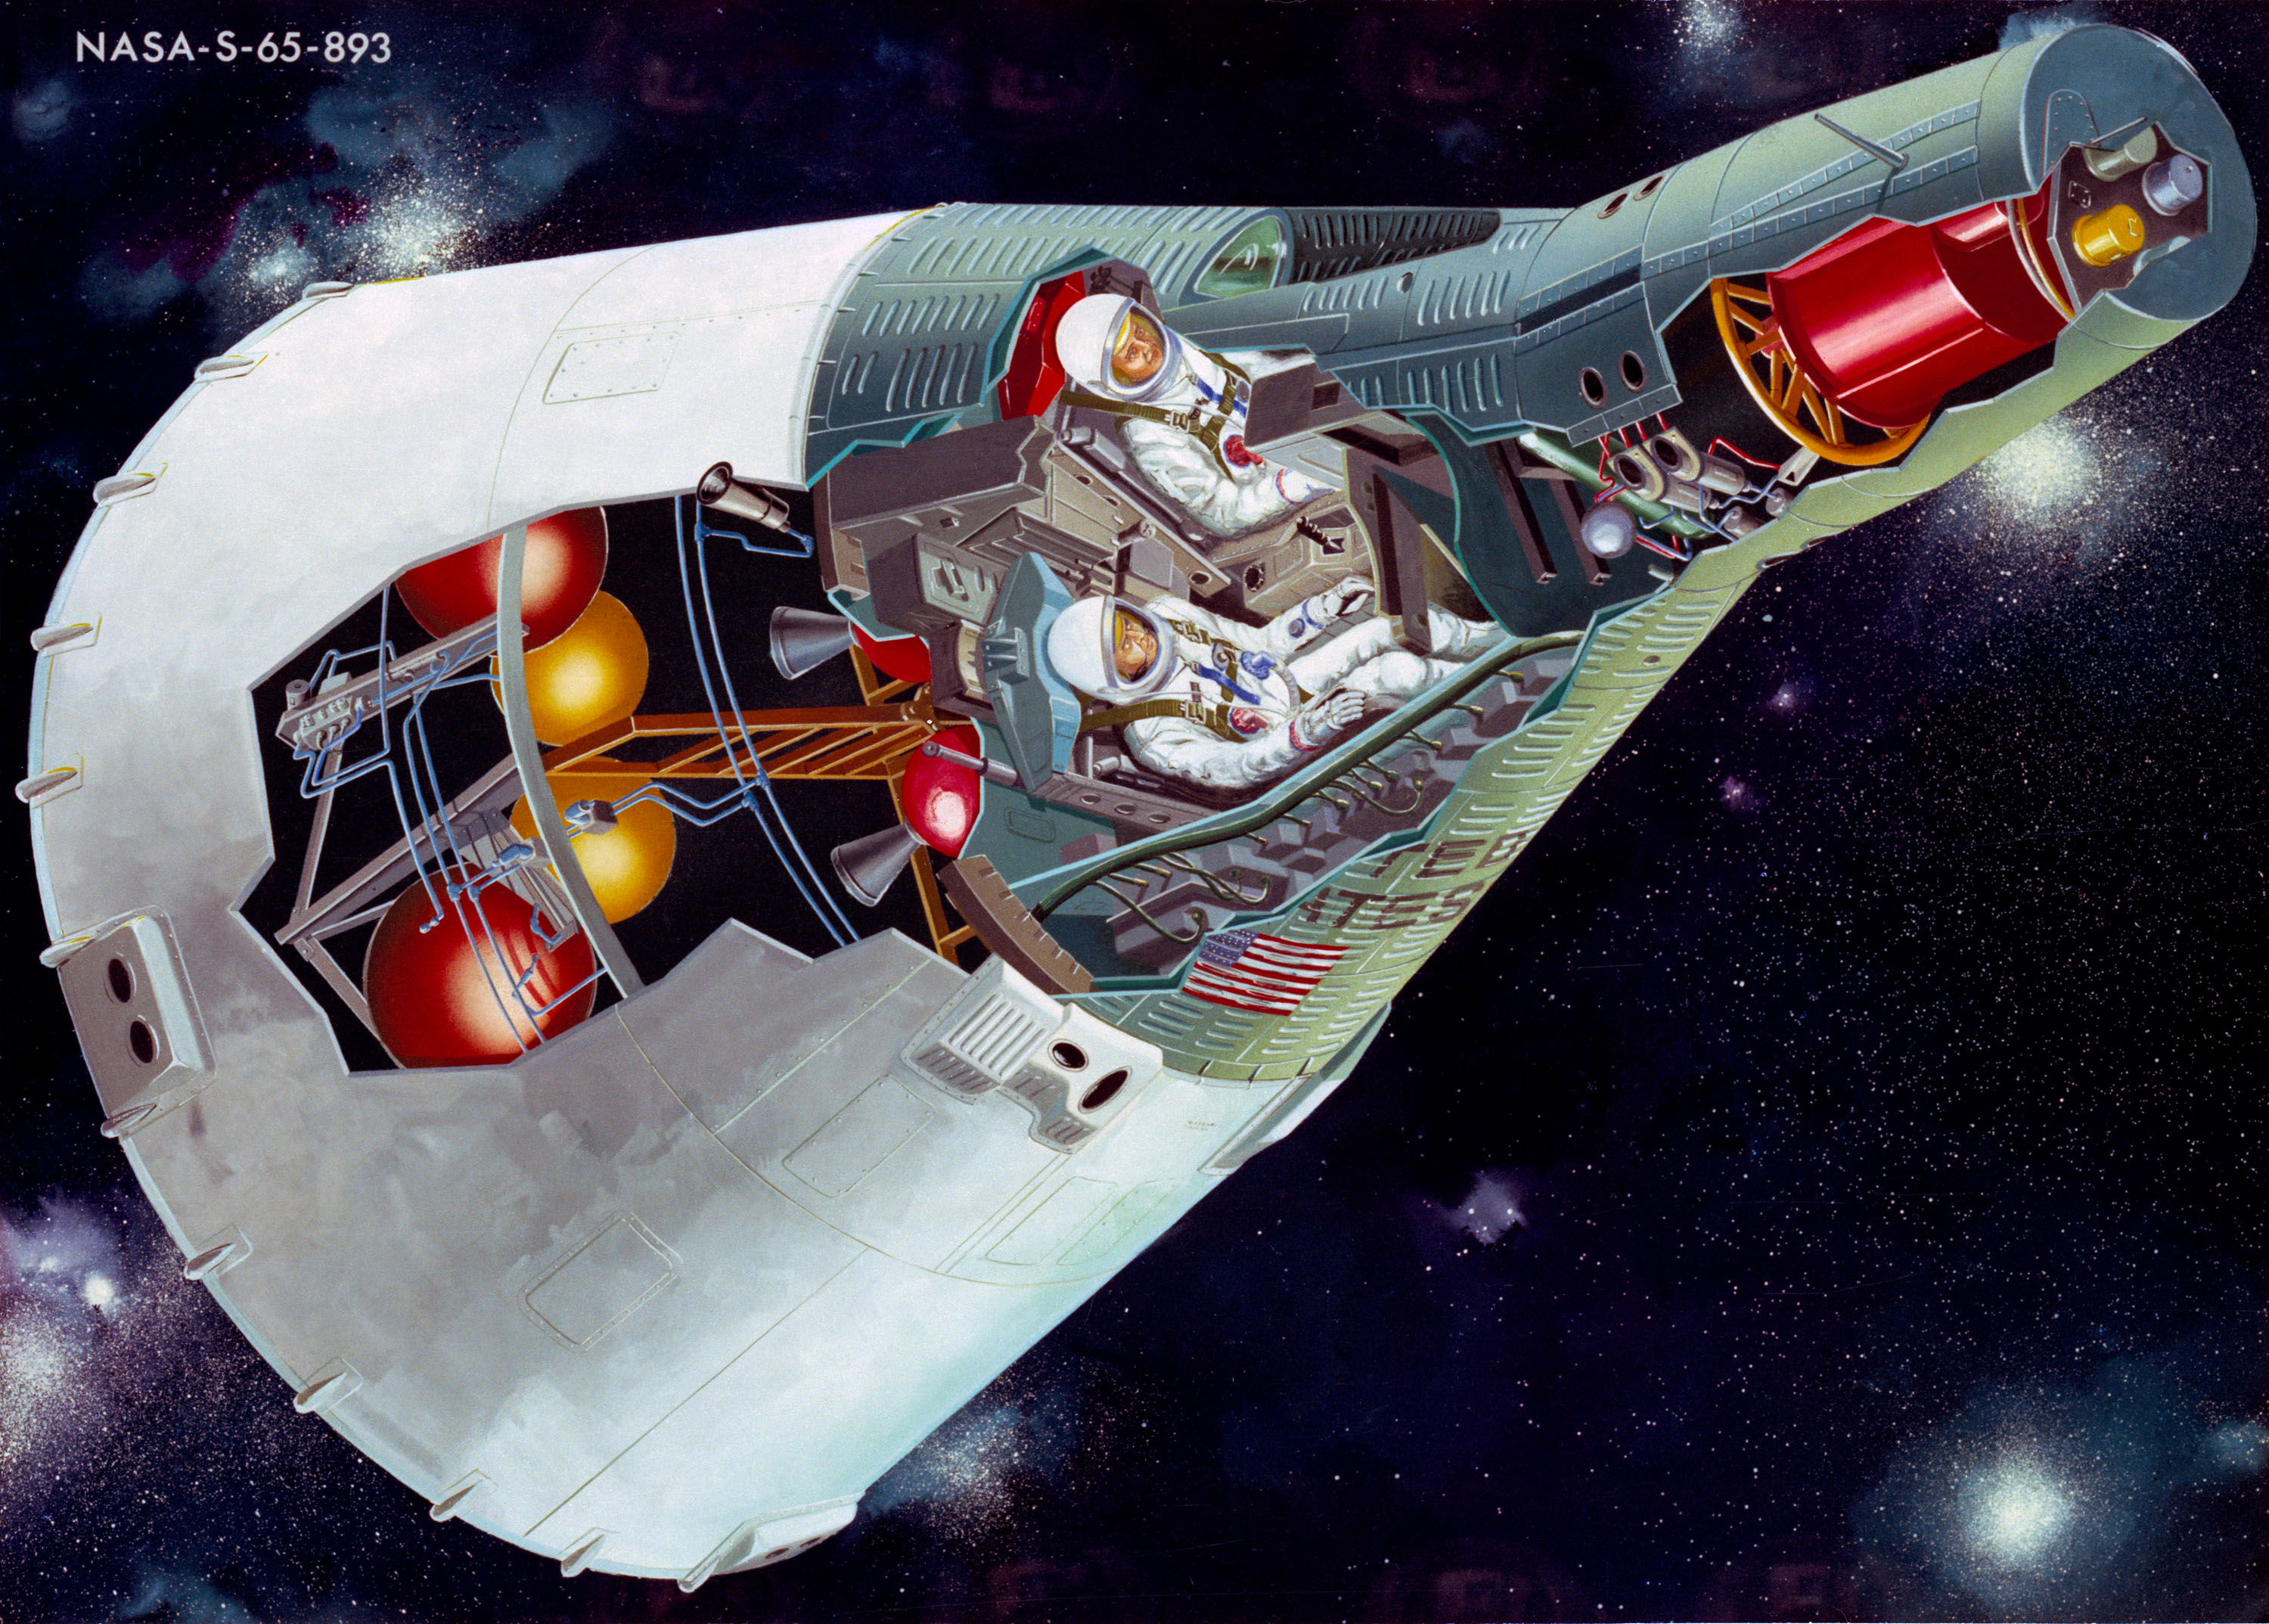 Cutaway illustration of the Gemini spacecraft with two astronauts inside.